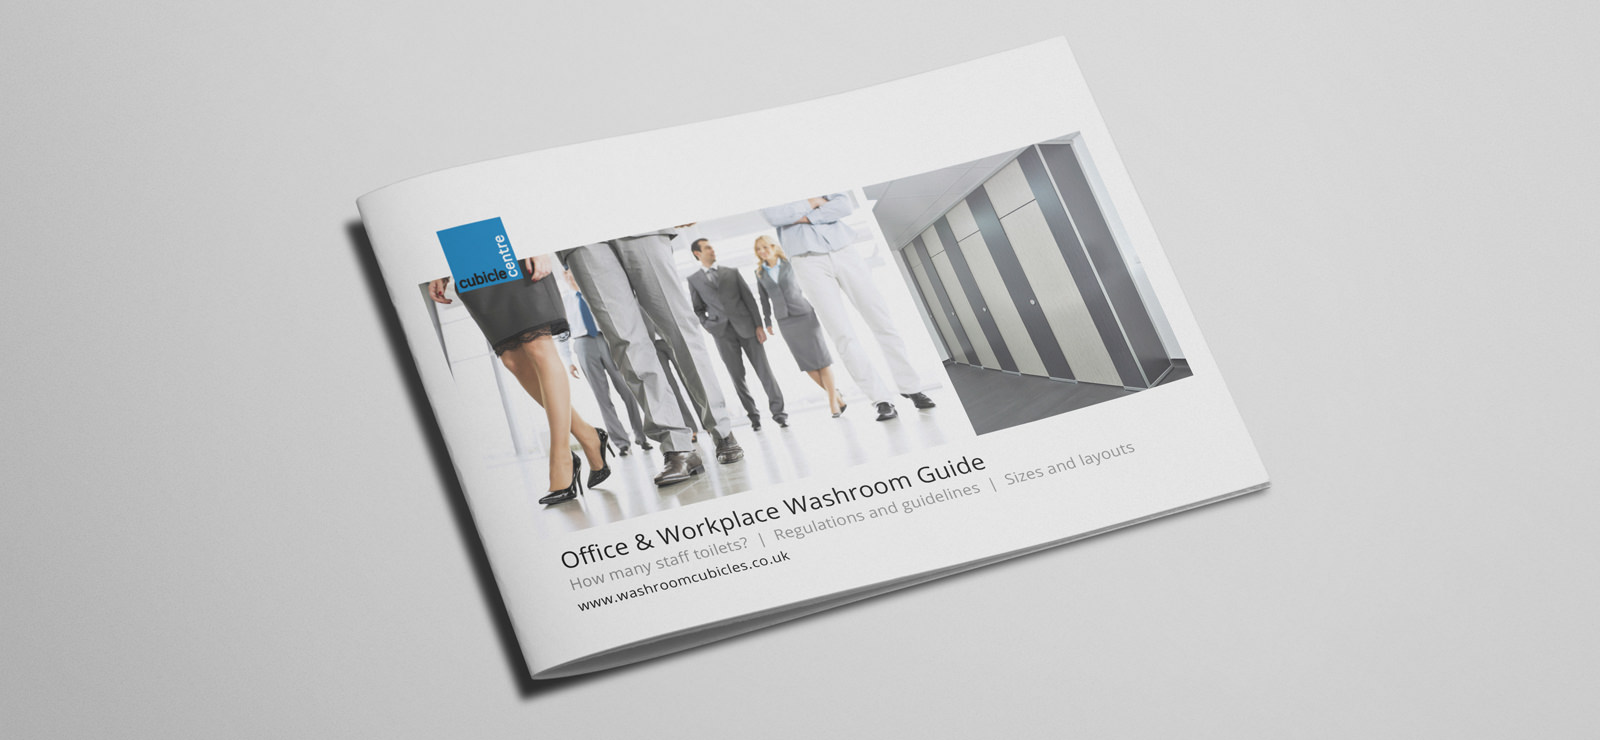 Office workplace washroom guideWorkplace and office toilet and washroom regulations   Cubicle Centre. Office Design Guidelines Uk. Home Design Ideas